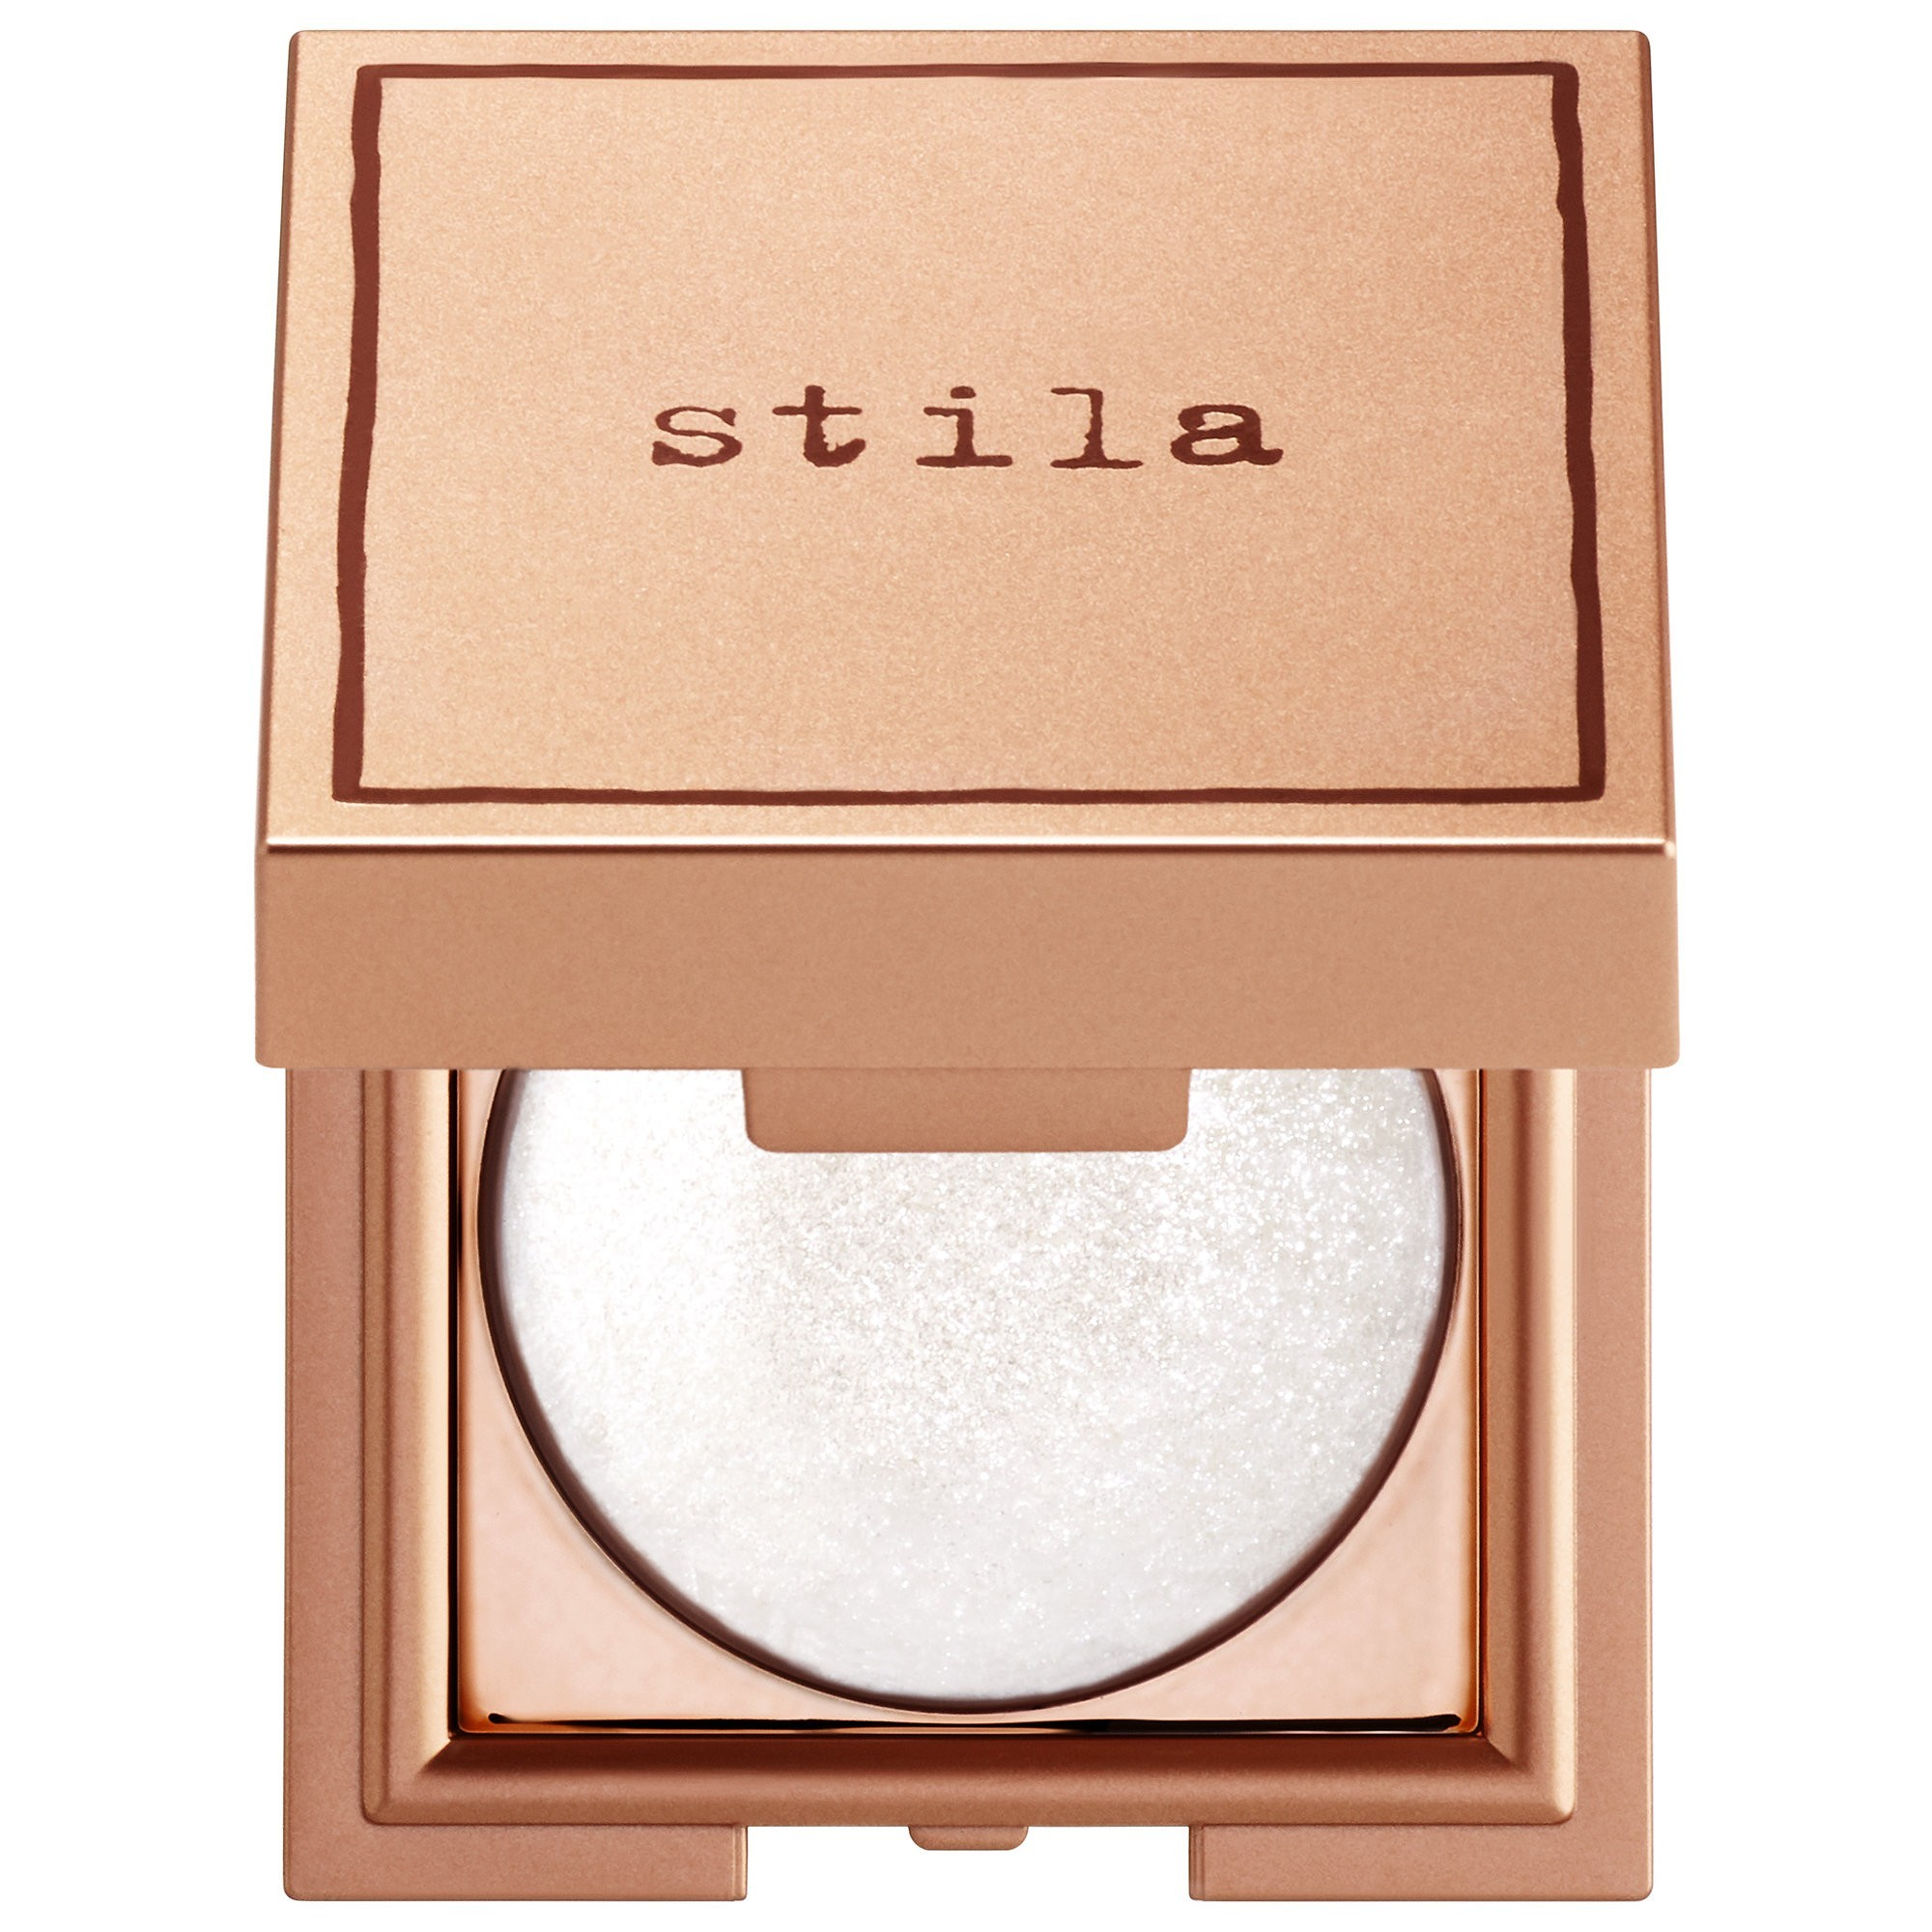 Stila Heaven's Dew All Over Glimmer